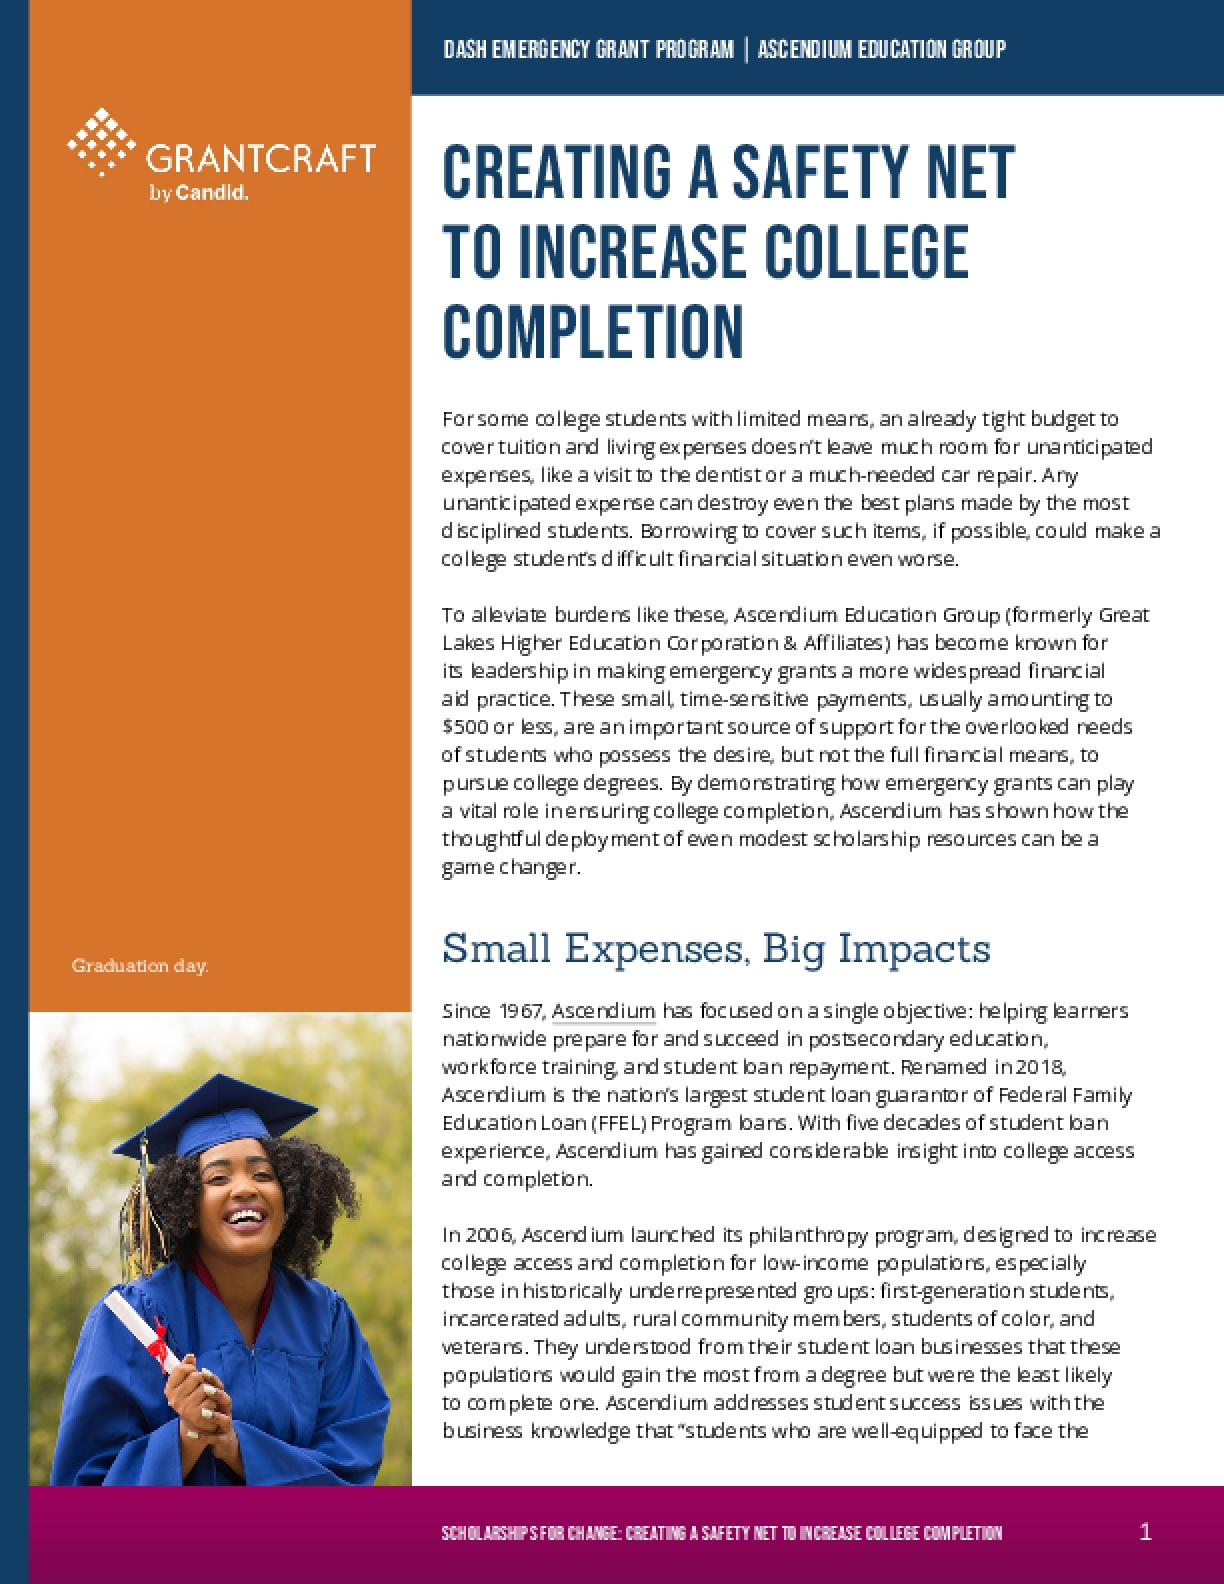 Creating a Safety Net to Increase College Completion